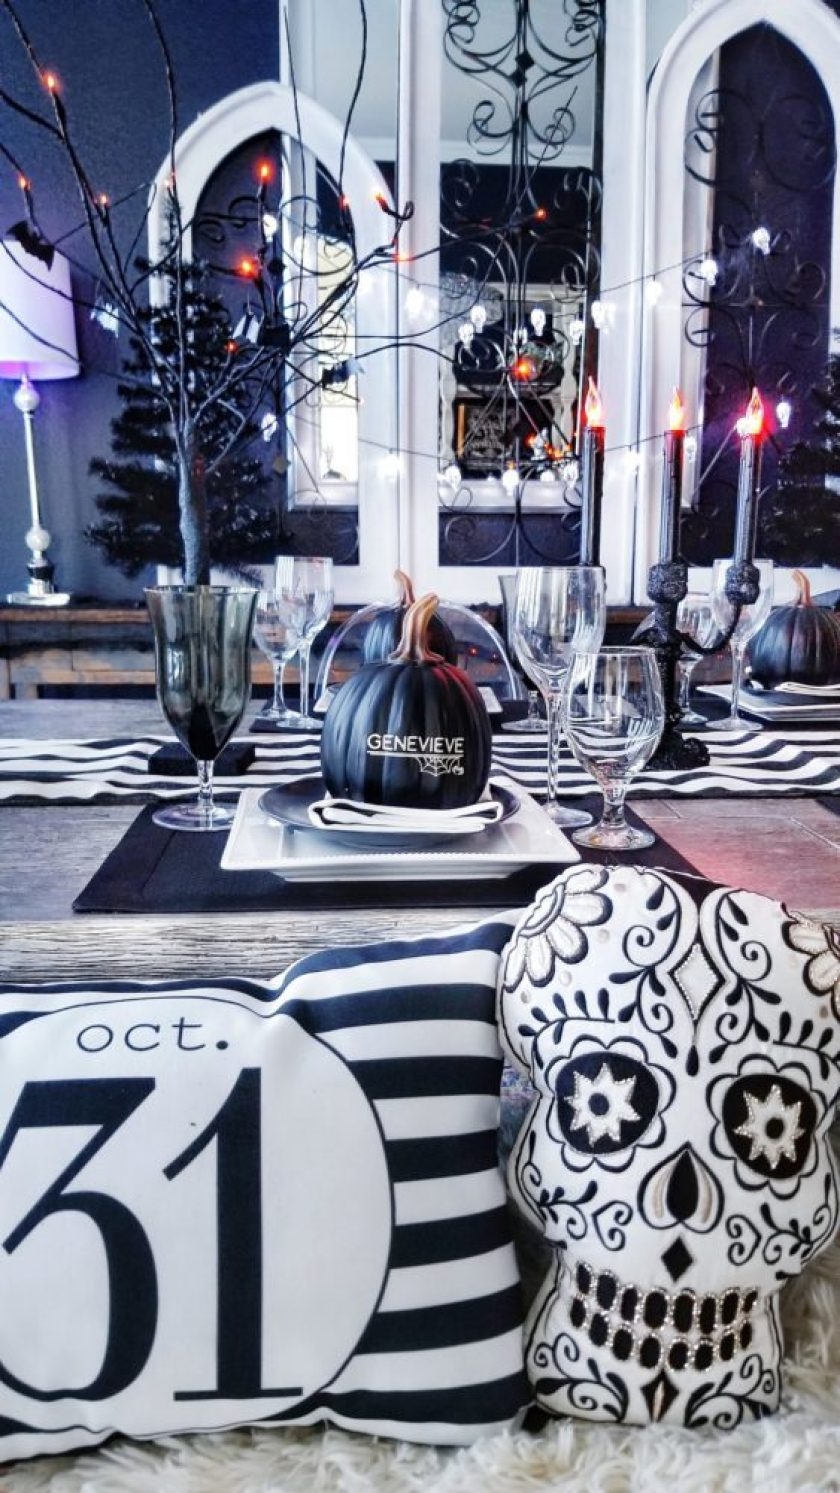 Halloween Dinner Party Ideas.How To Throw A Haunted Halloween Dinner Party We Re The